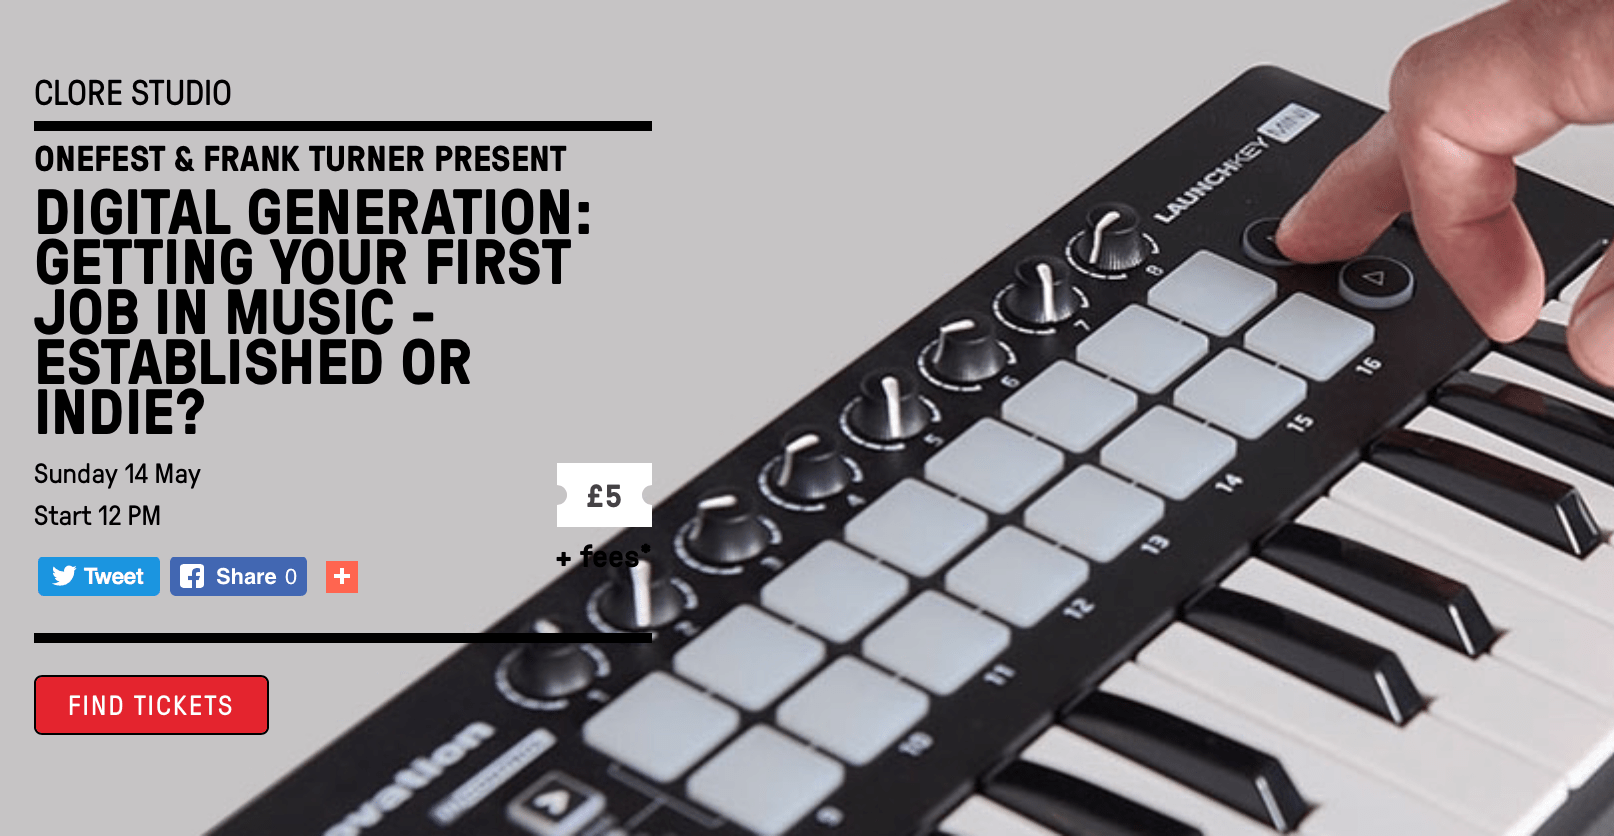 DIGITAL GENERATION: GETTING YOUR FIRST JOB IN MUSIC – ESTABLISHED OR INDIE?